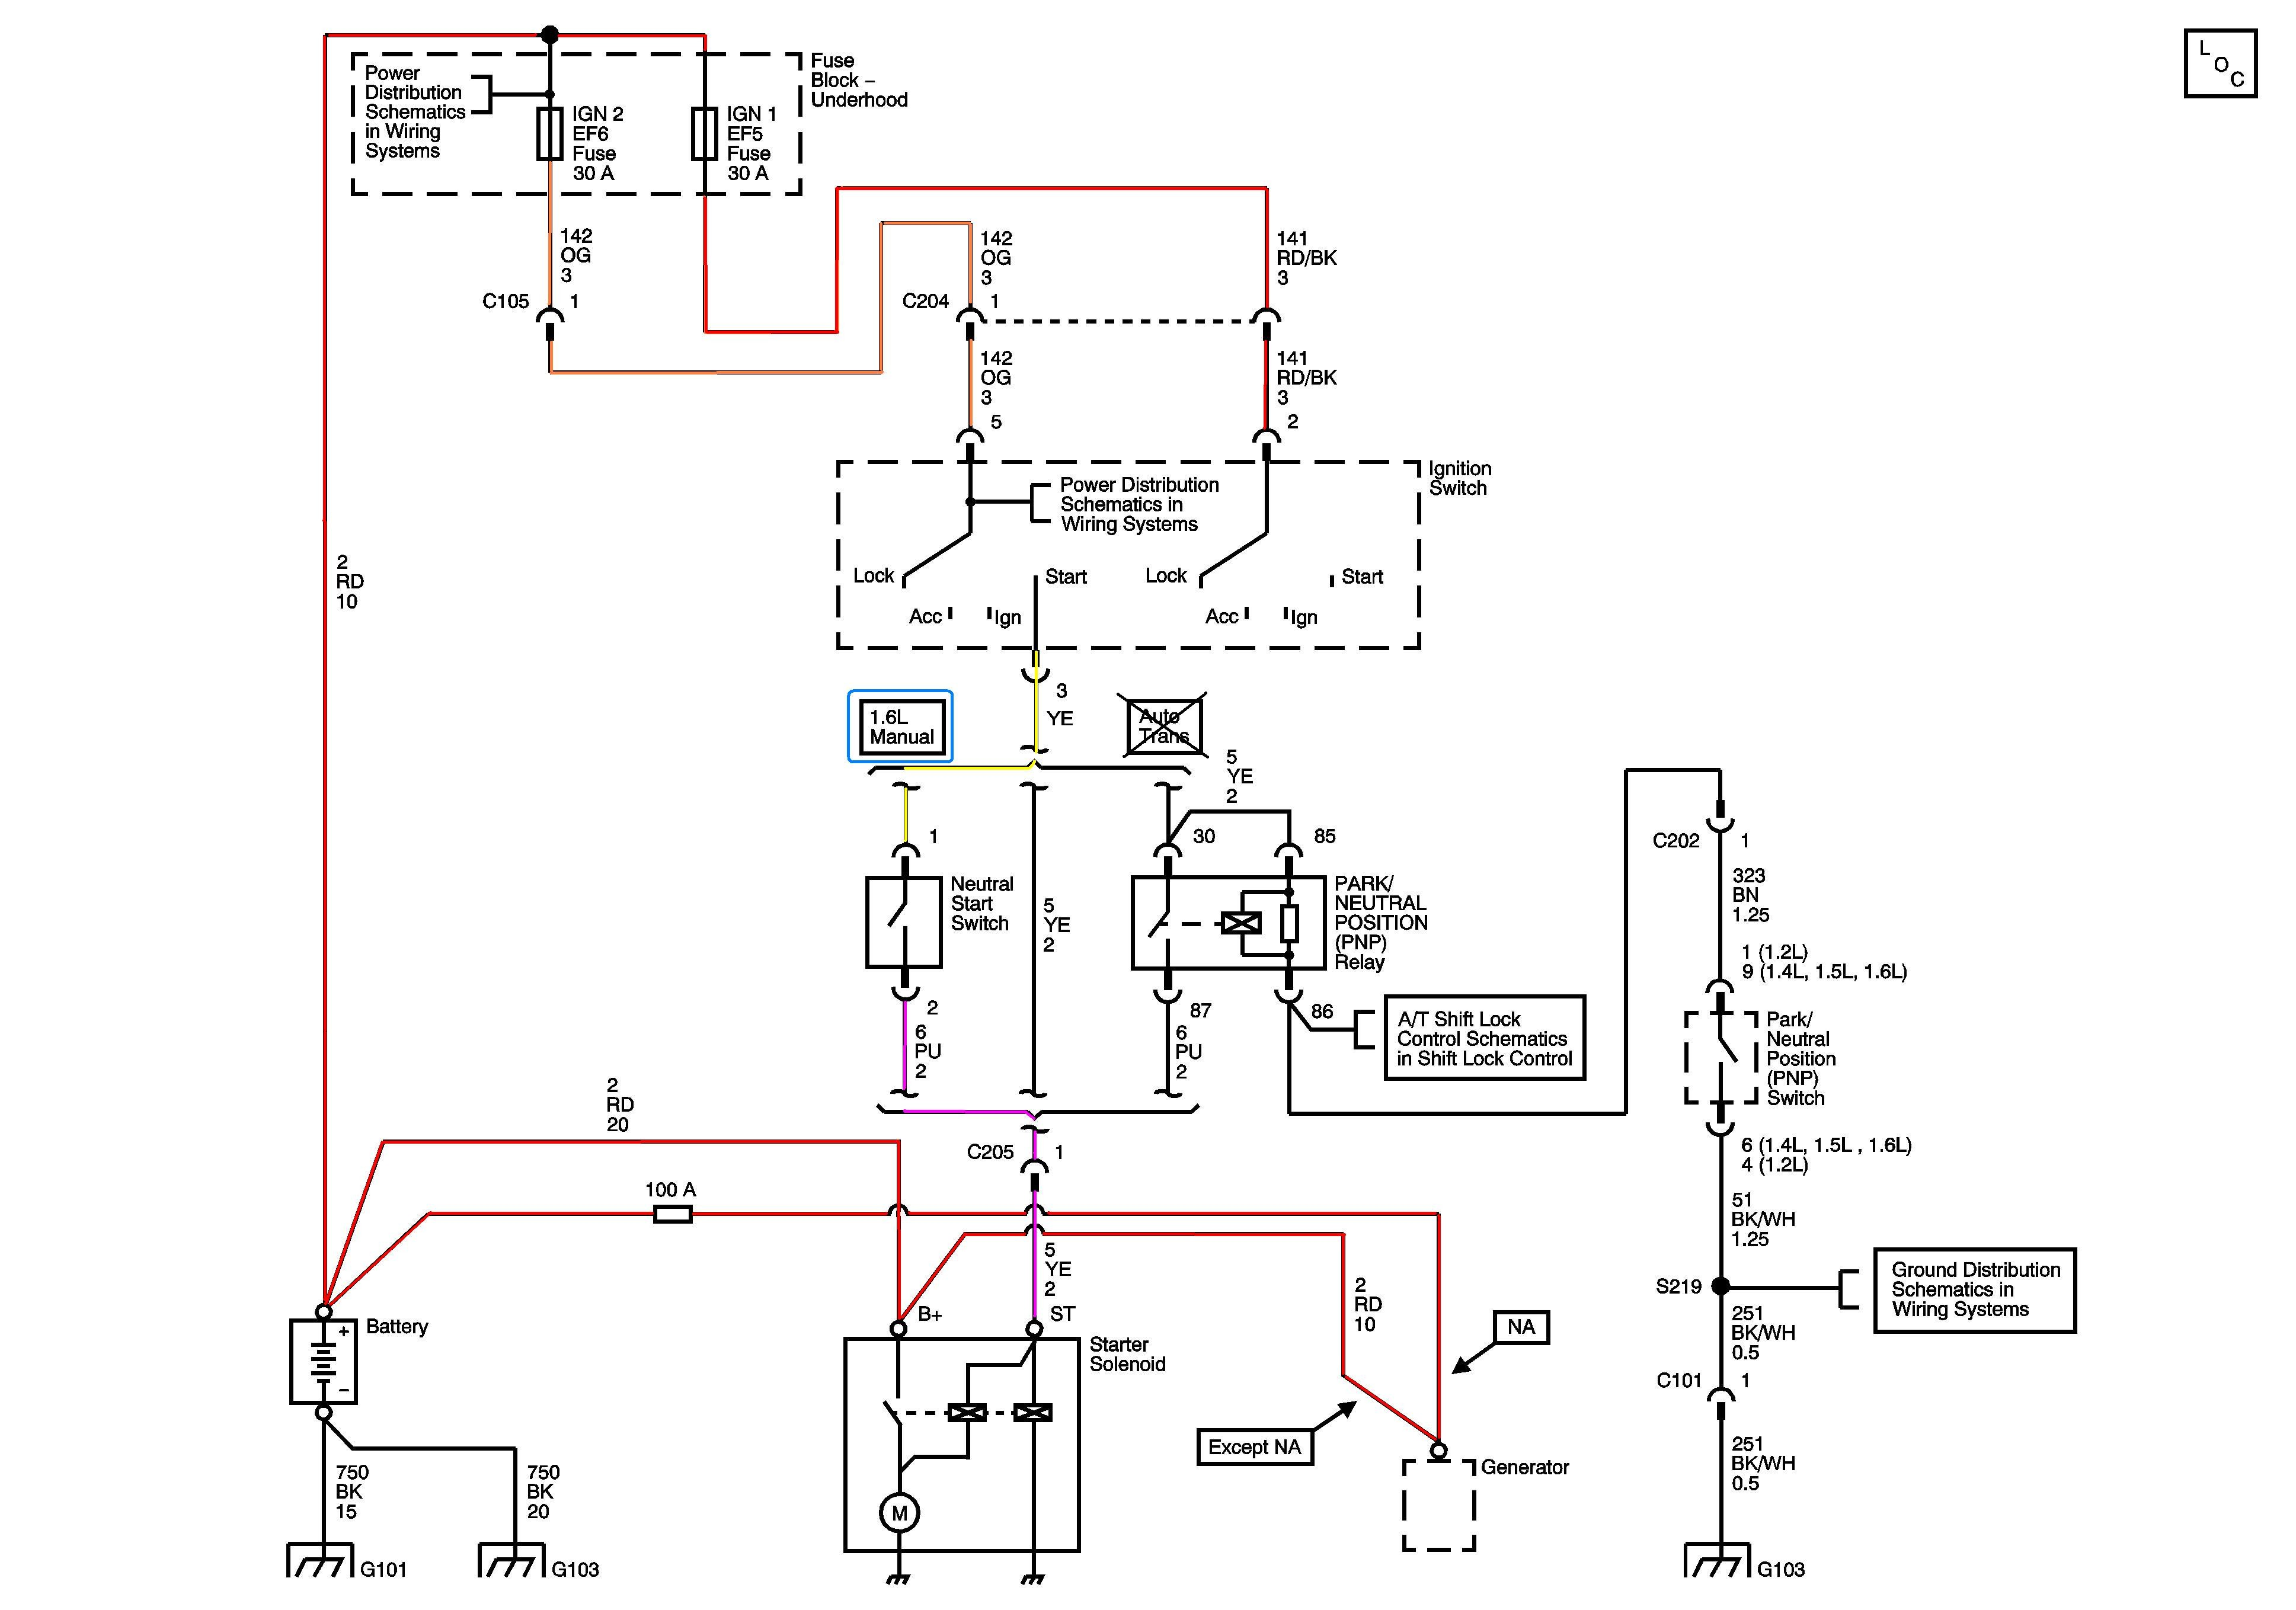 Wiring Diagram for 2009 Chevy Aveo 1.6 Diagram] Chevrolet Optra Wiring Diagram Full Version Hd Of Wiring Diagram for 2009 Chevy Aveo 1.6